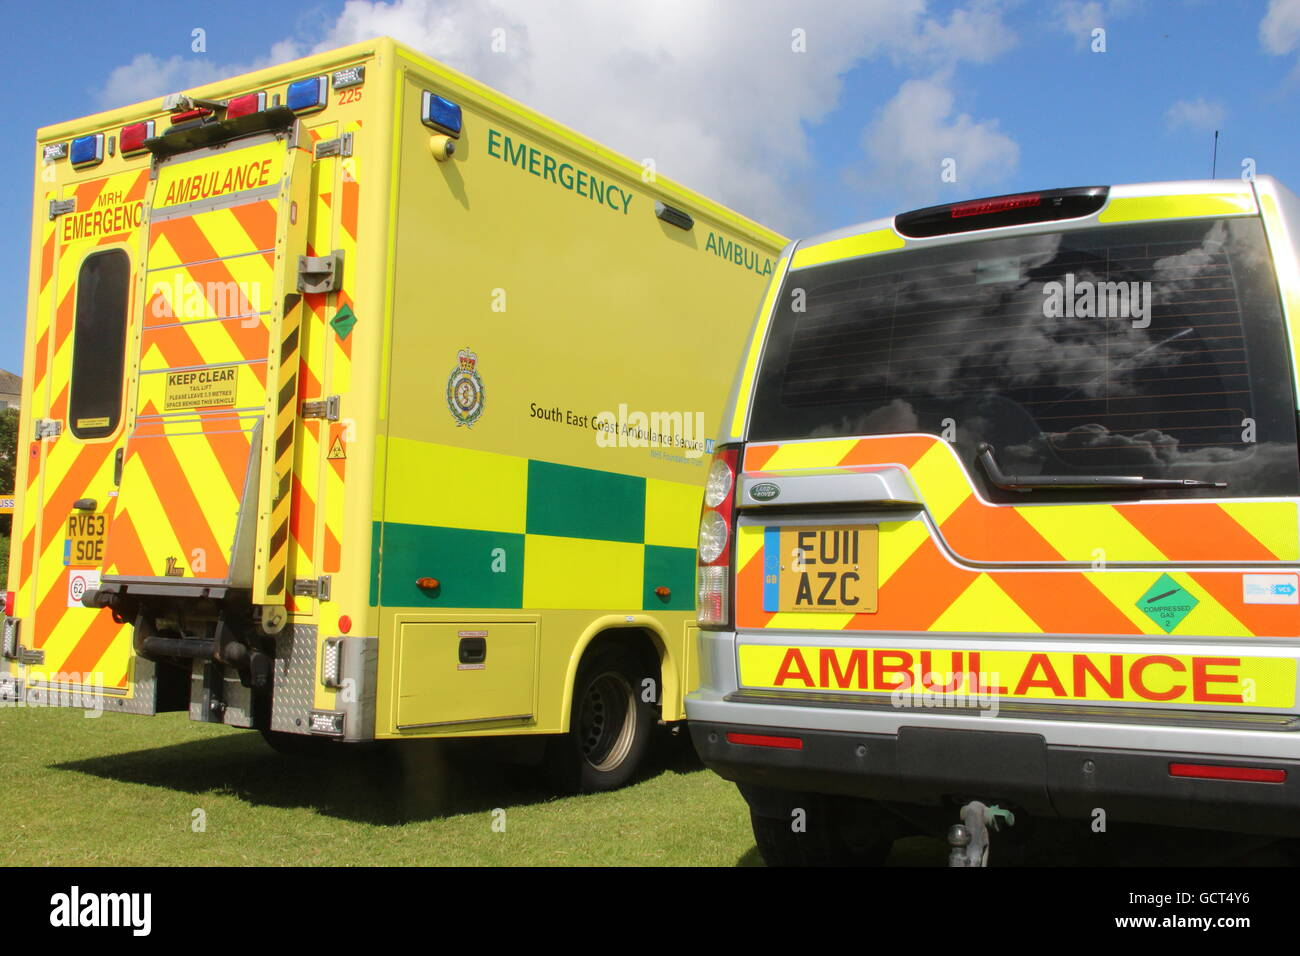 BACK OF SOUTH EAST COAST AMBULANCE VEHICLES PARKED TOGETHER,AN EMERGENCY AMBULANCE AND A FIRST RESPONSE PARAMEDIC - Stock Image